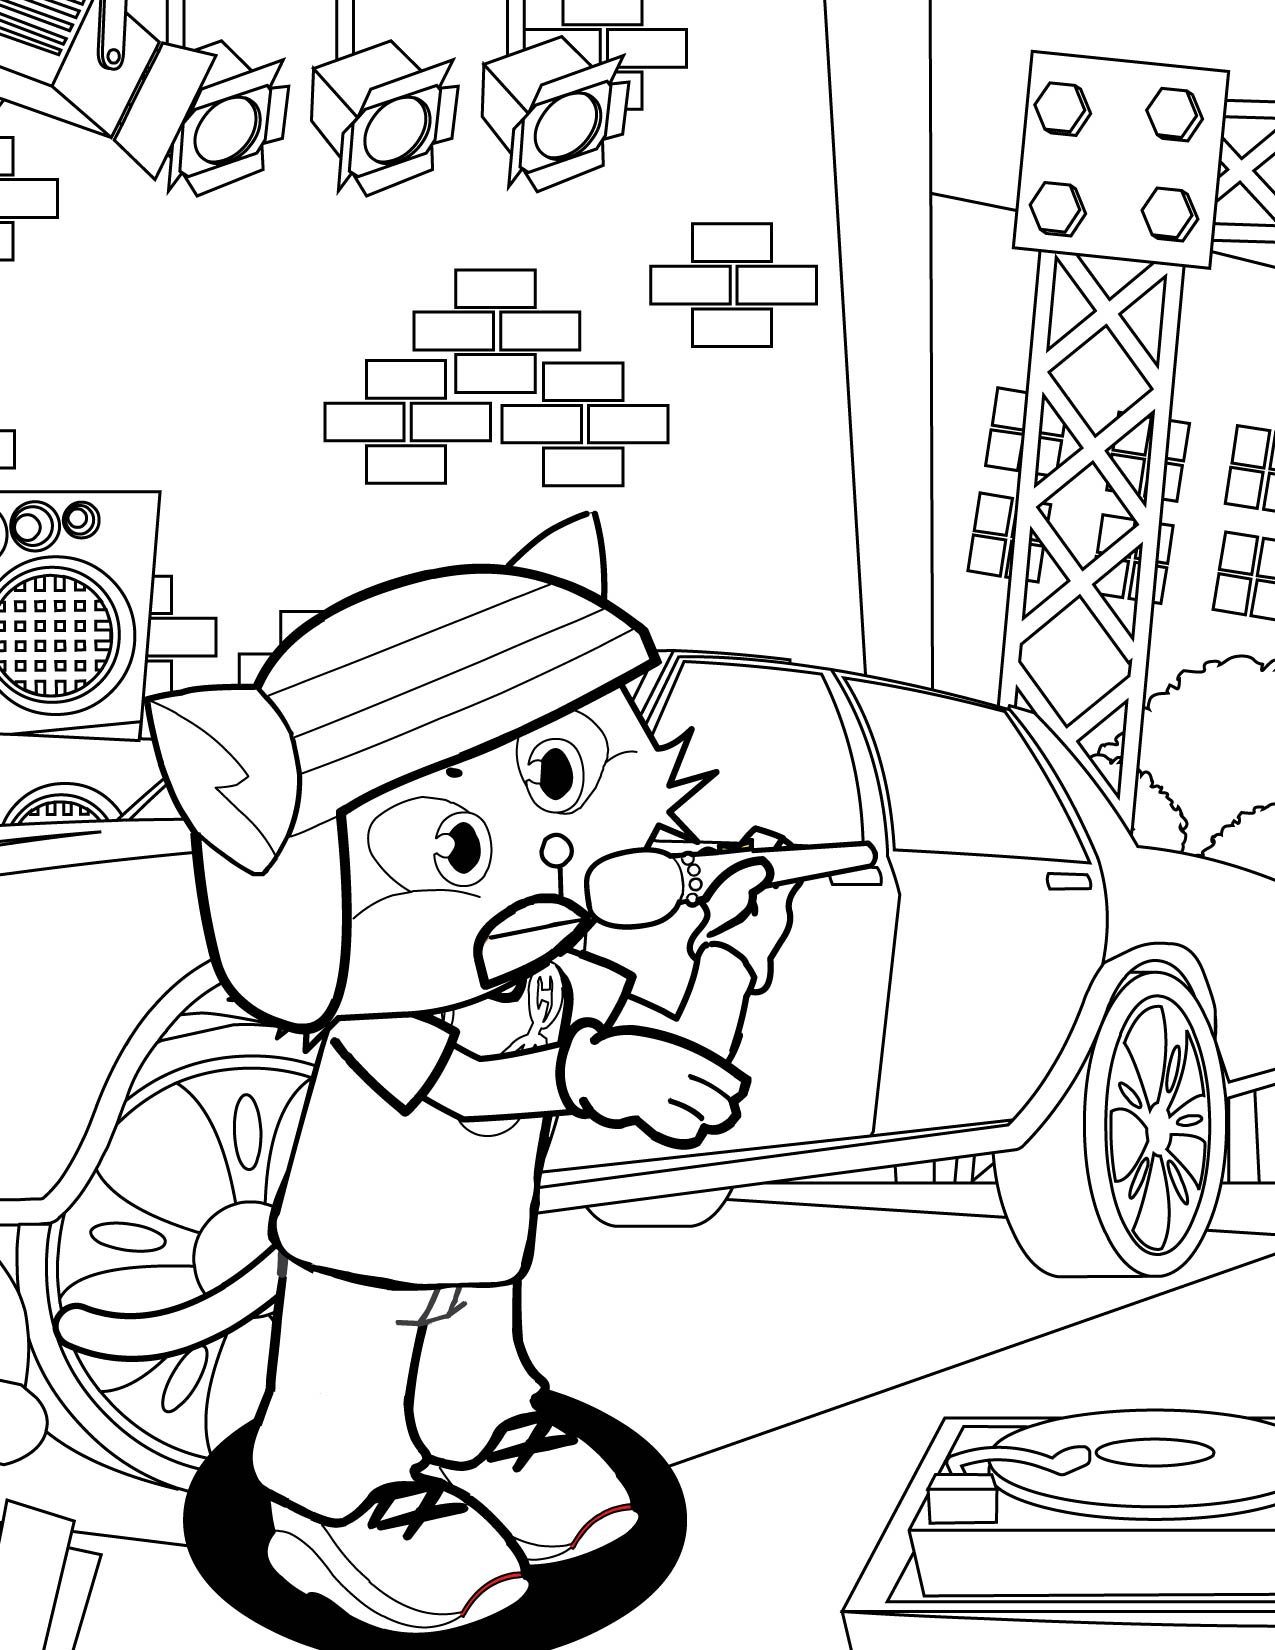 Rapper futurerk0 free colouring pages for Rapper coloring pages